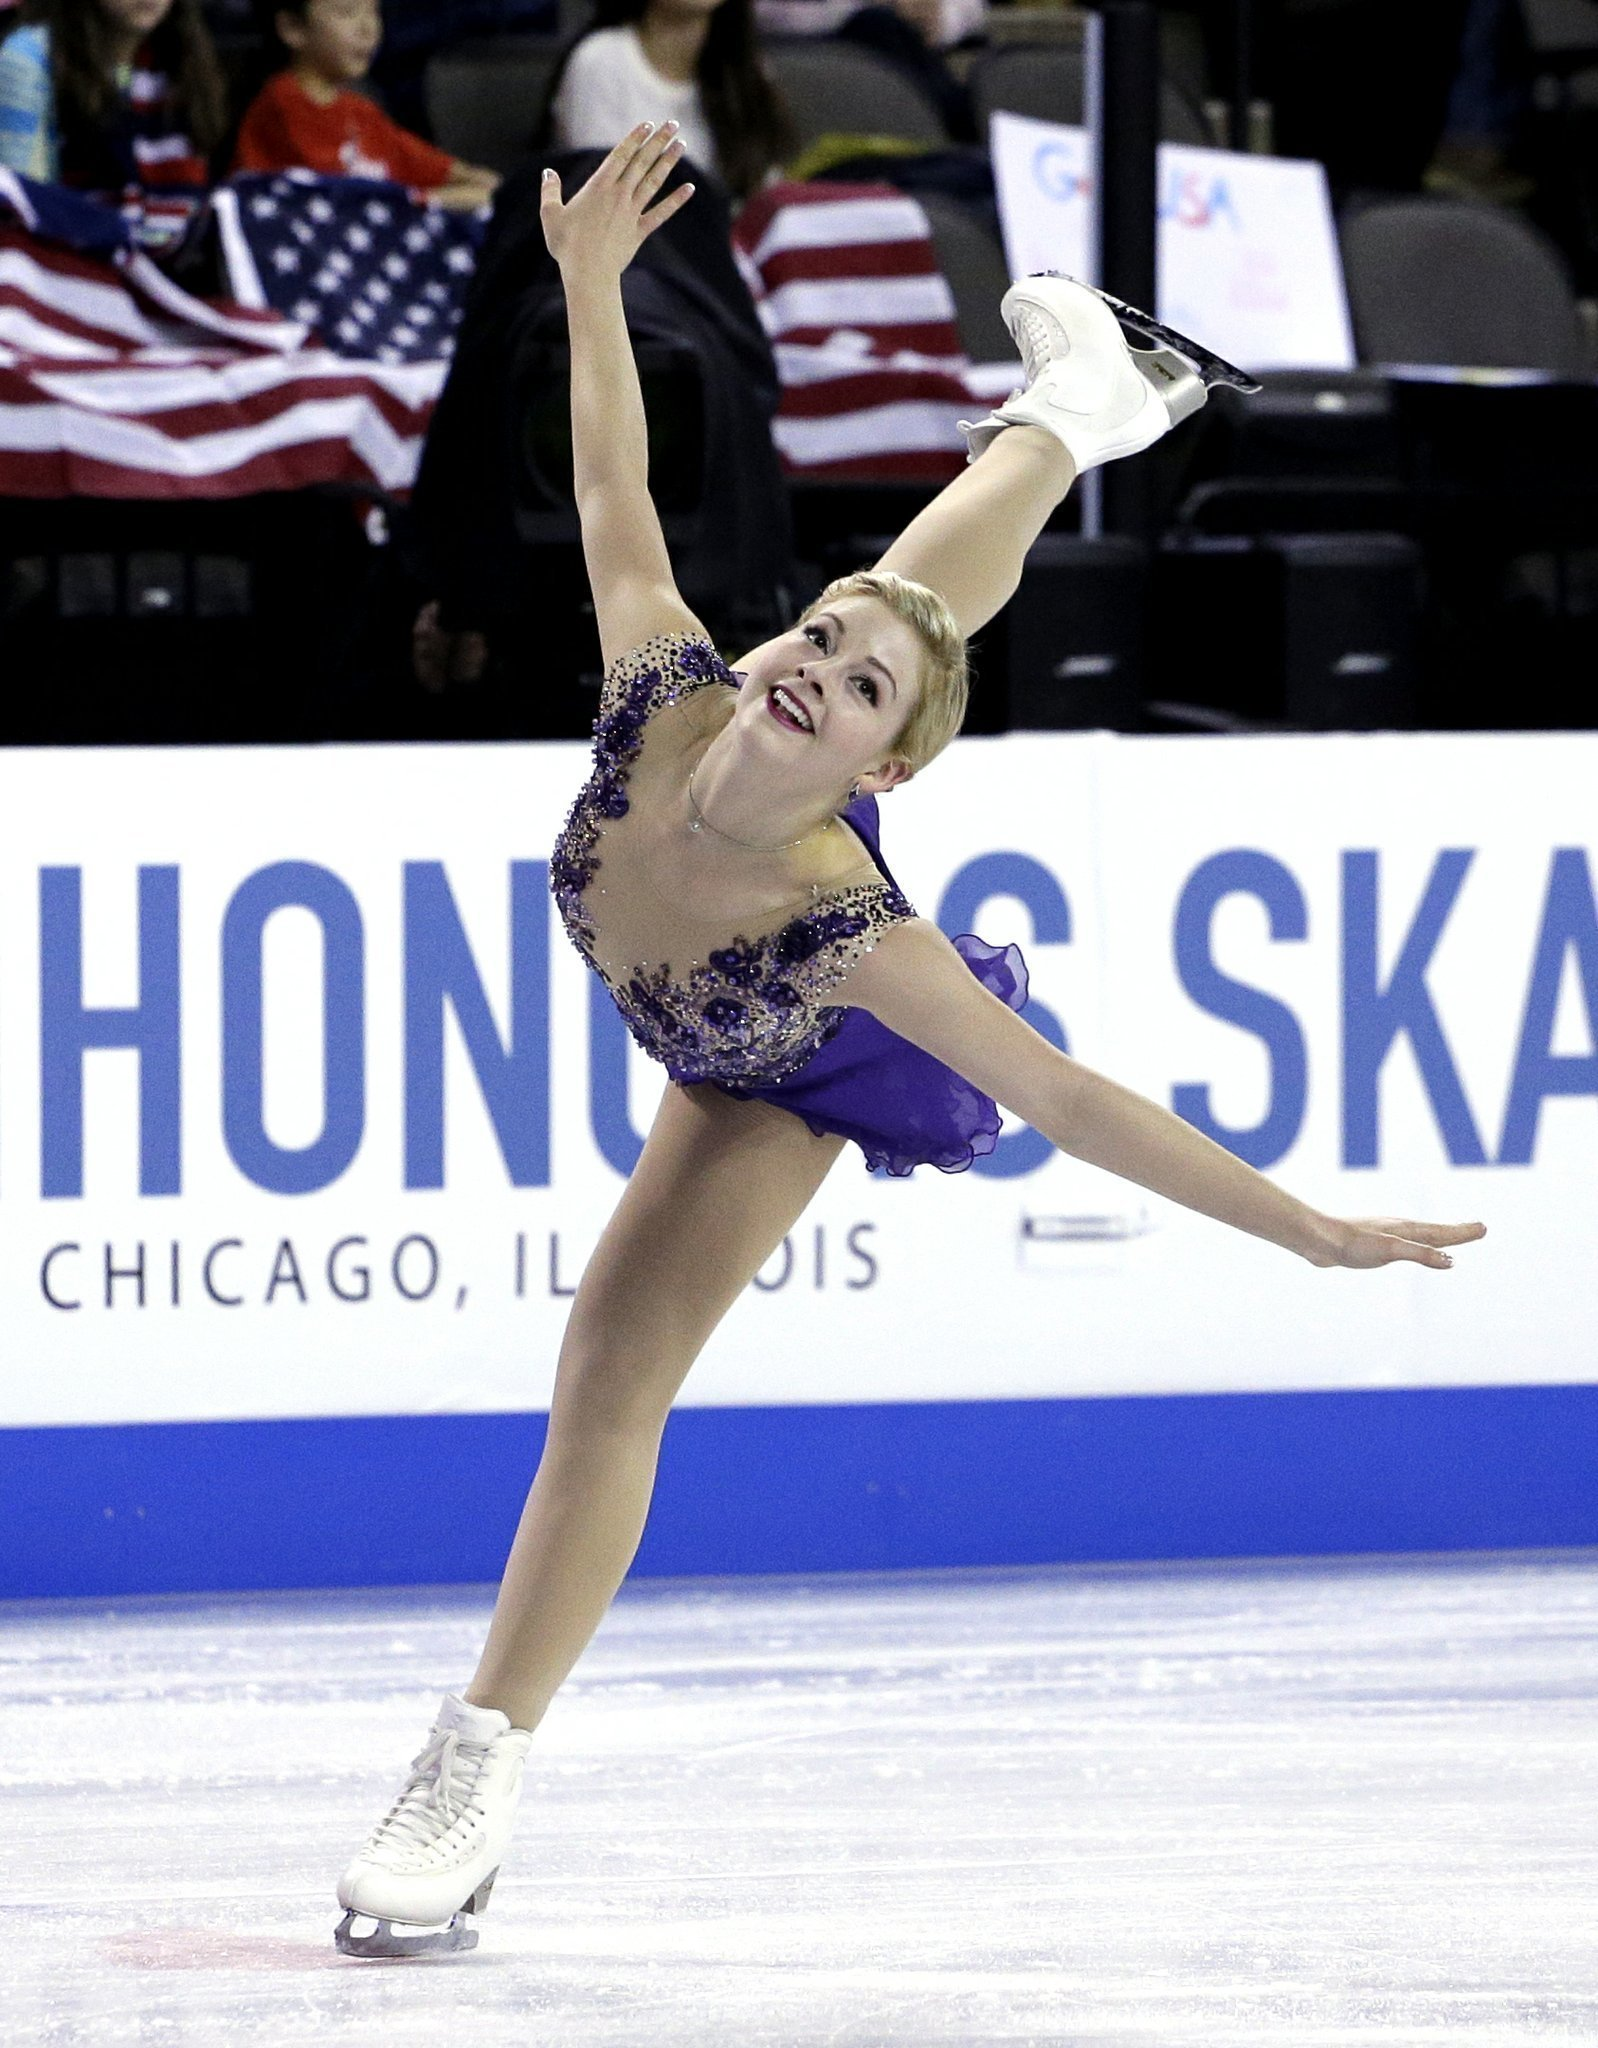 Sasha Cohen reigning US Figure Skating Champion Olympic silver